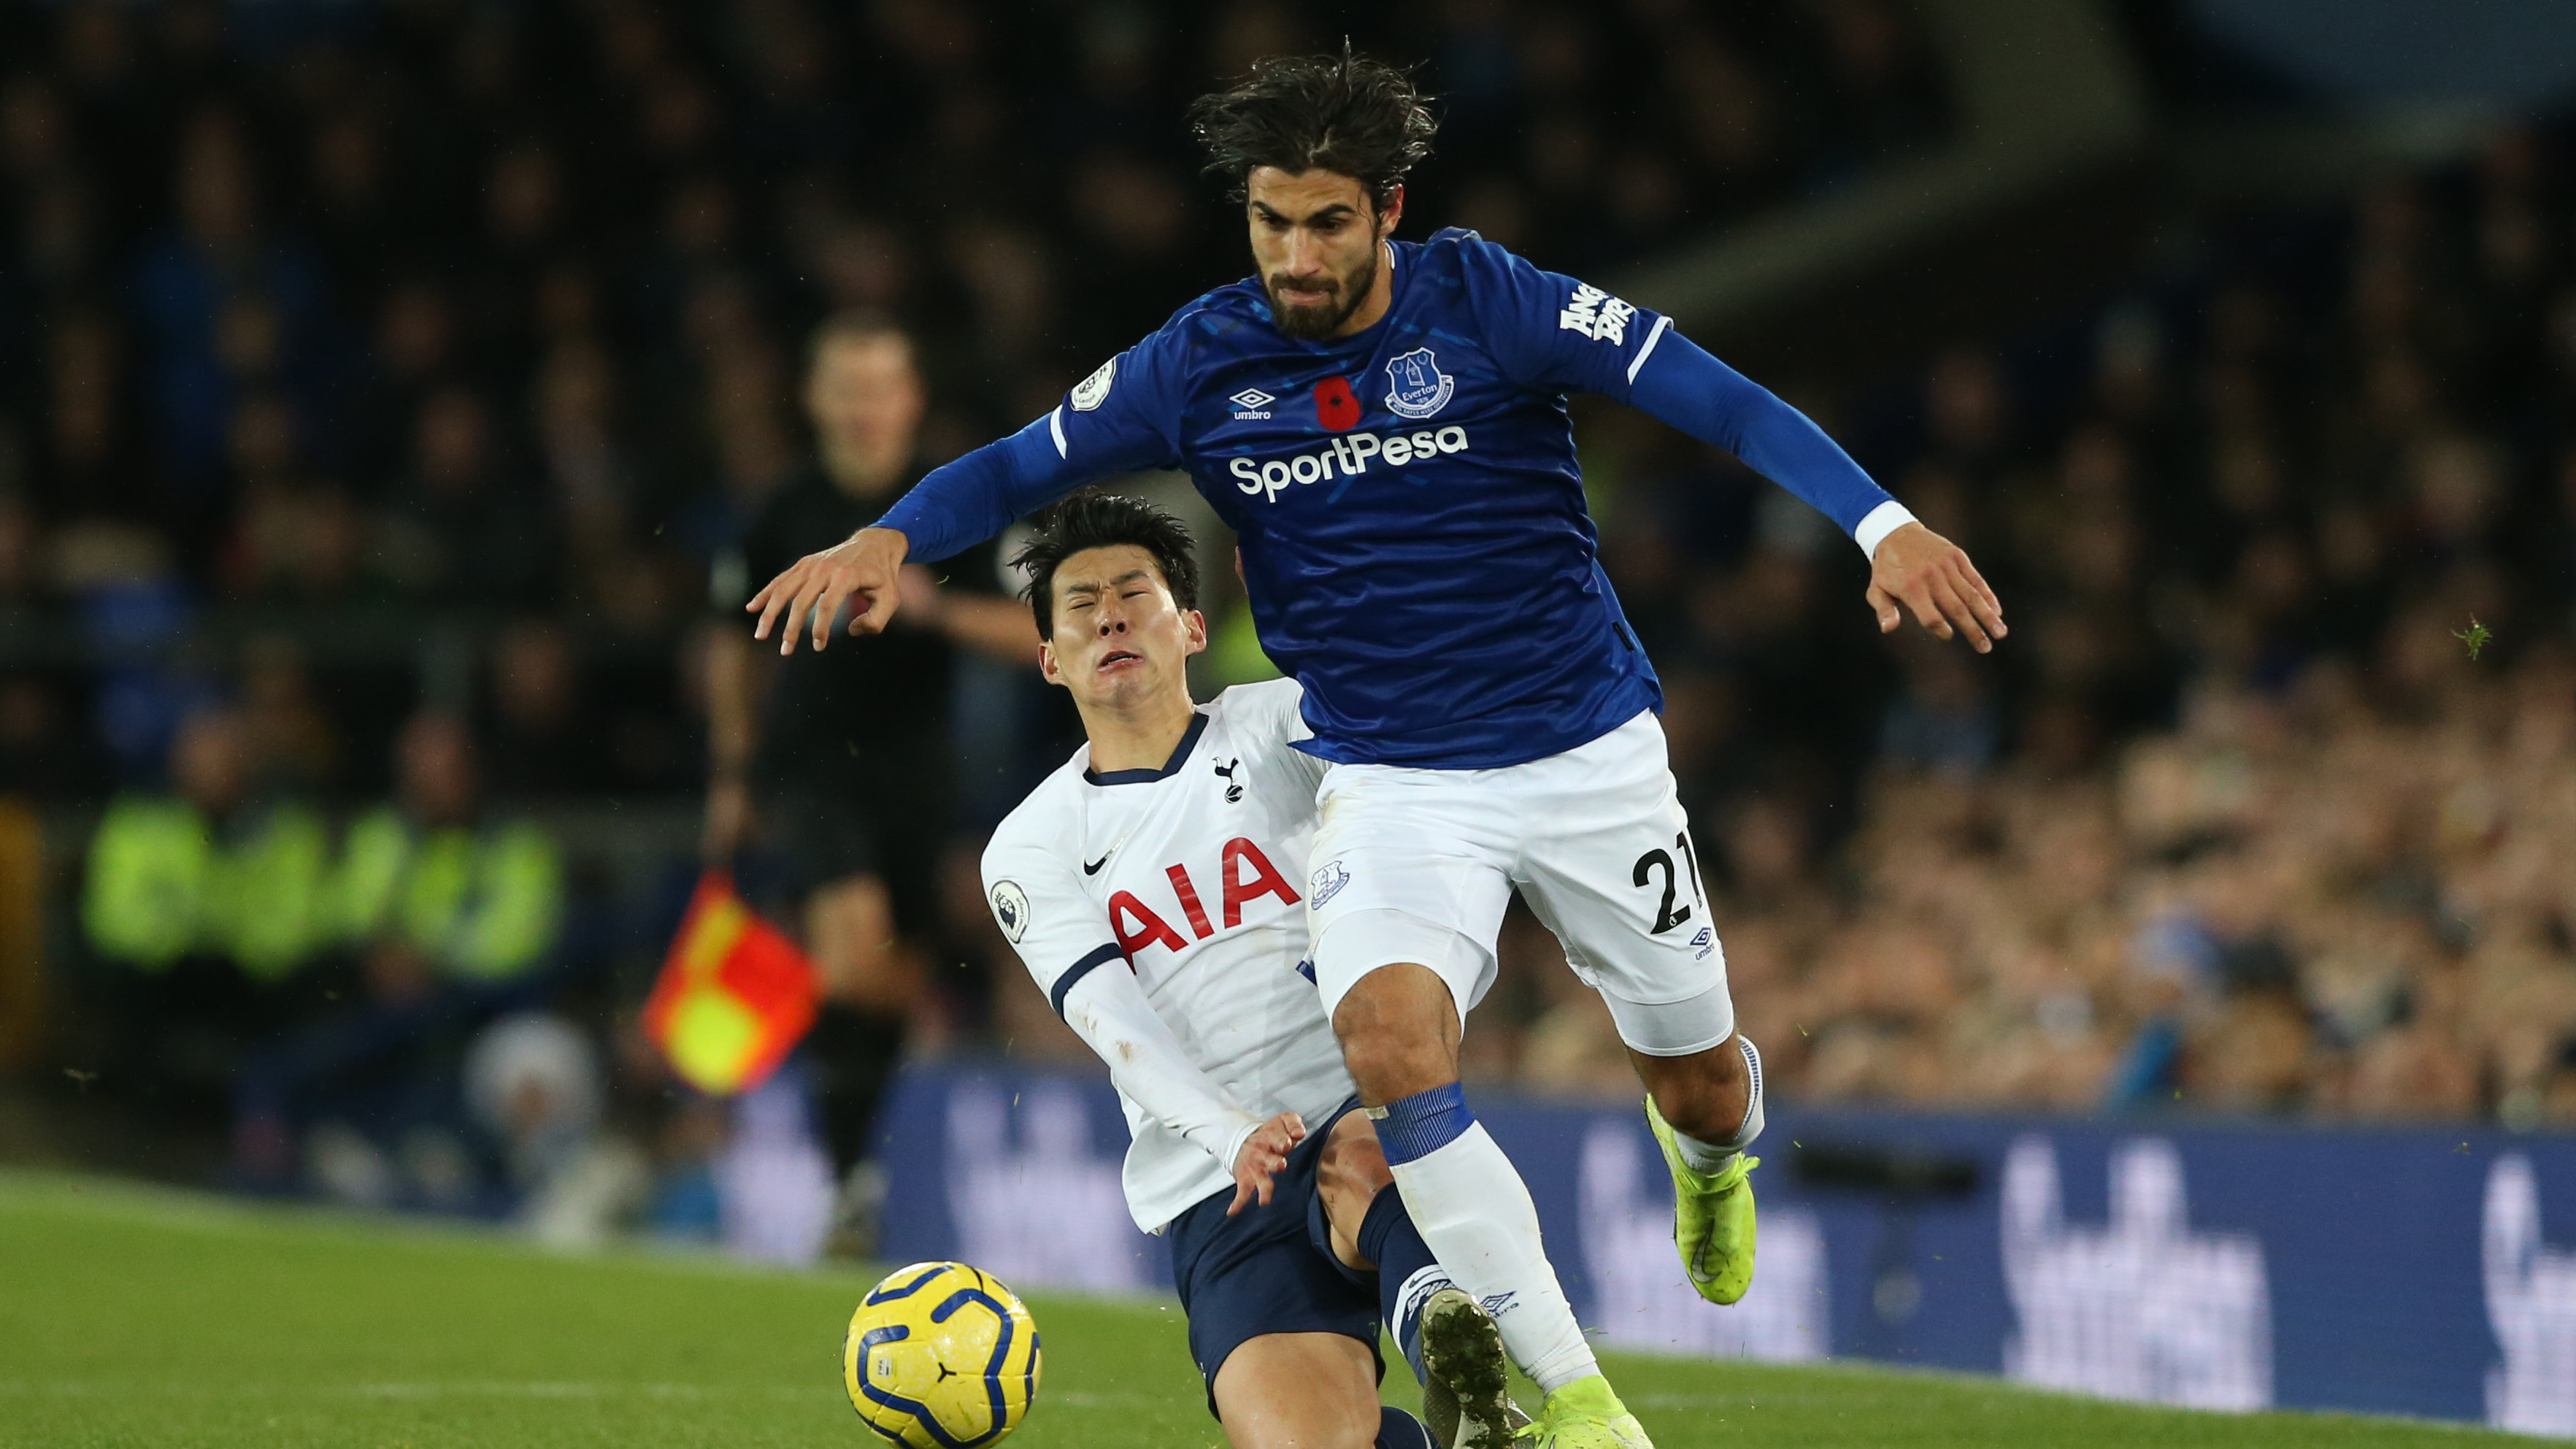 Andre Gomes leaves hospital after horror ankle injury to start road to recovery at Everton